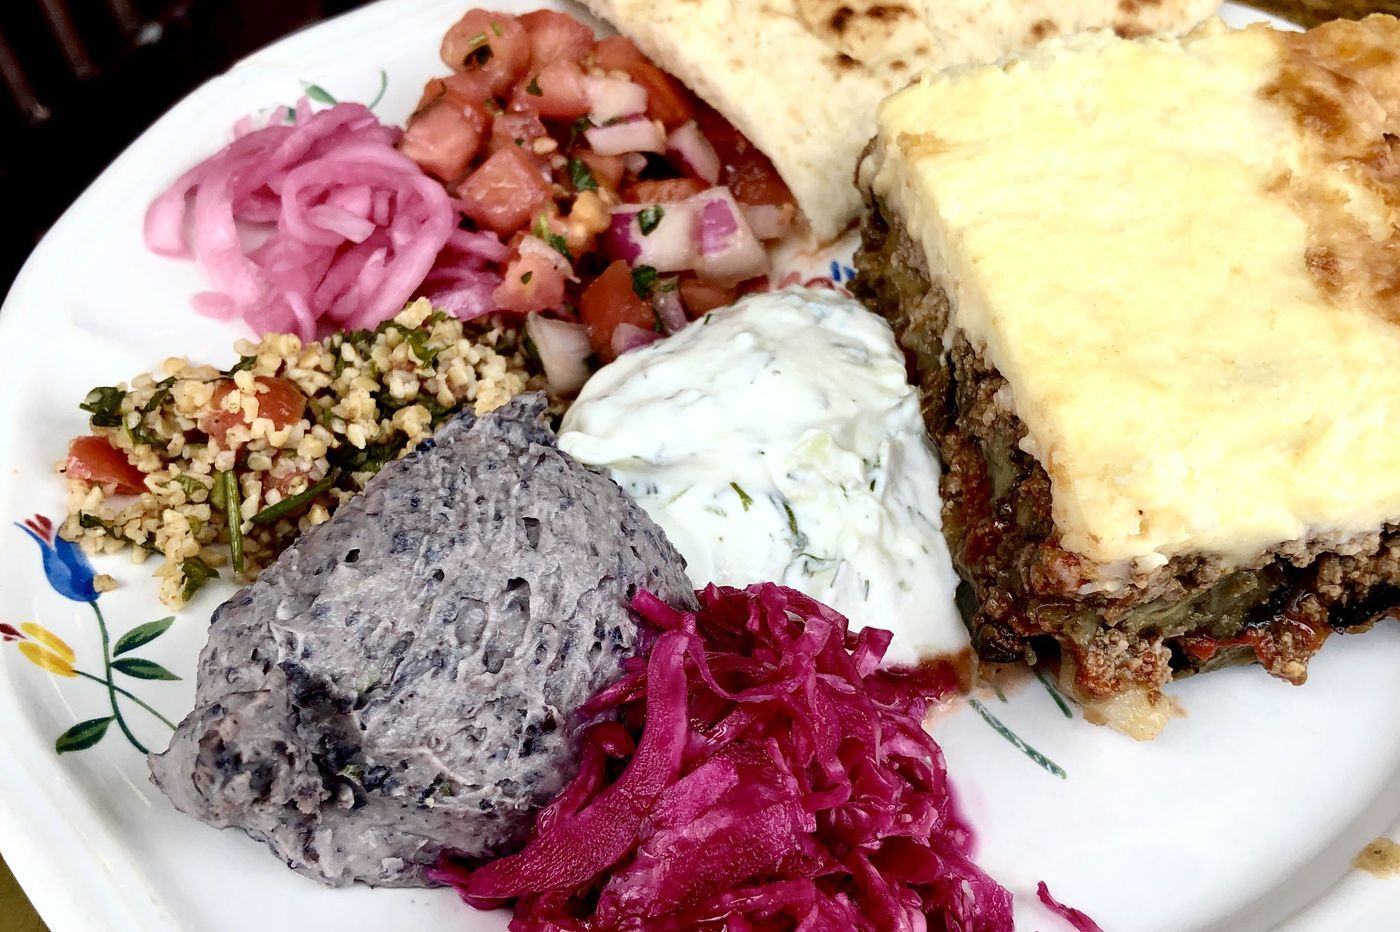 At Mount Airy cafe, moussaka is not to be missed